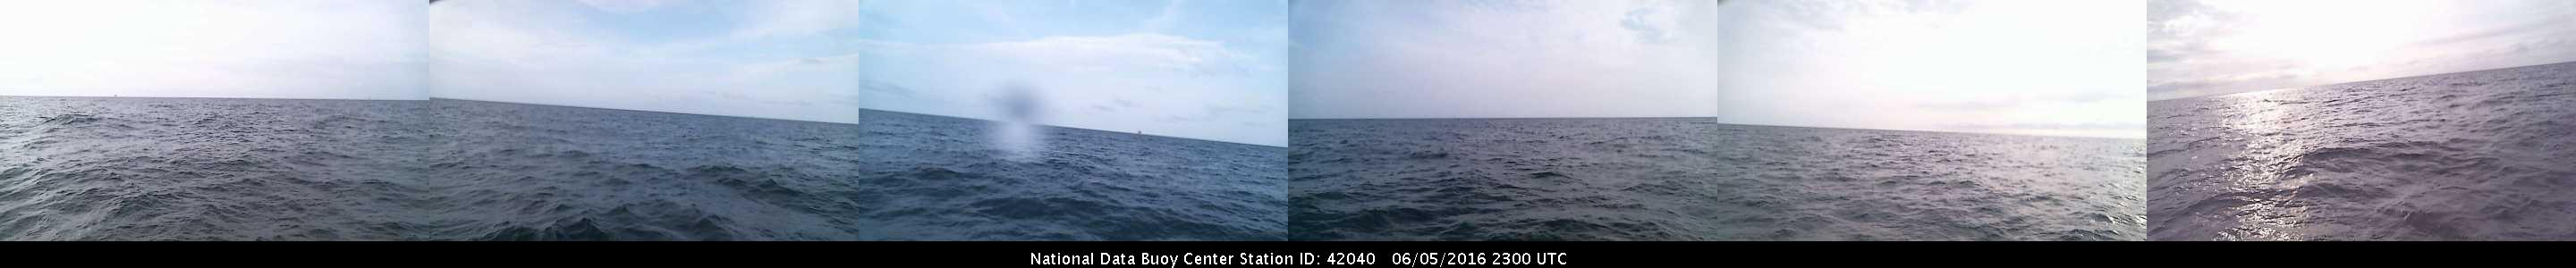 Buoy Camera off Yucaan for 93L (June 2016) 120 NM ESE of Cozumel, MX